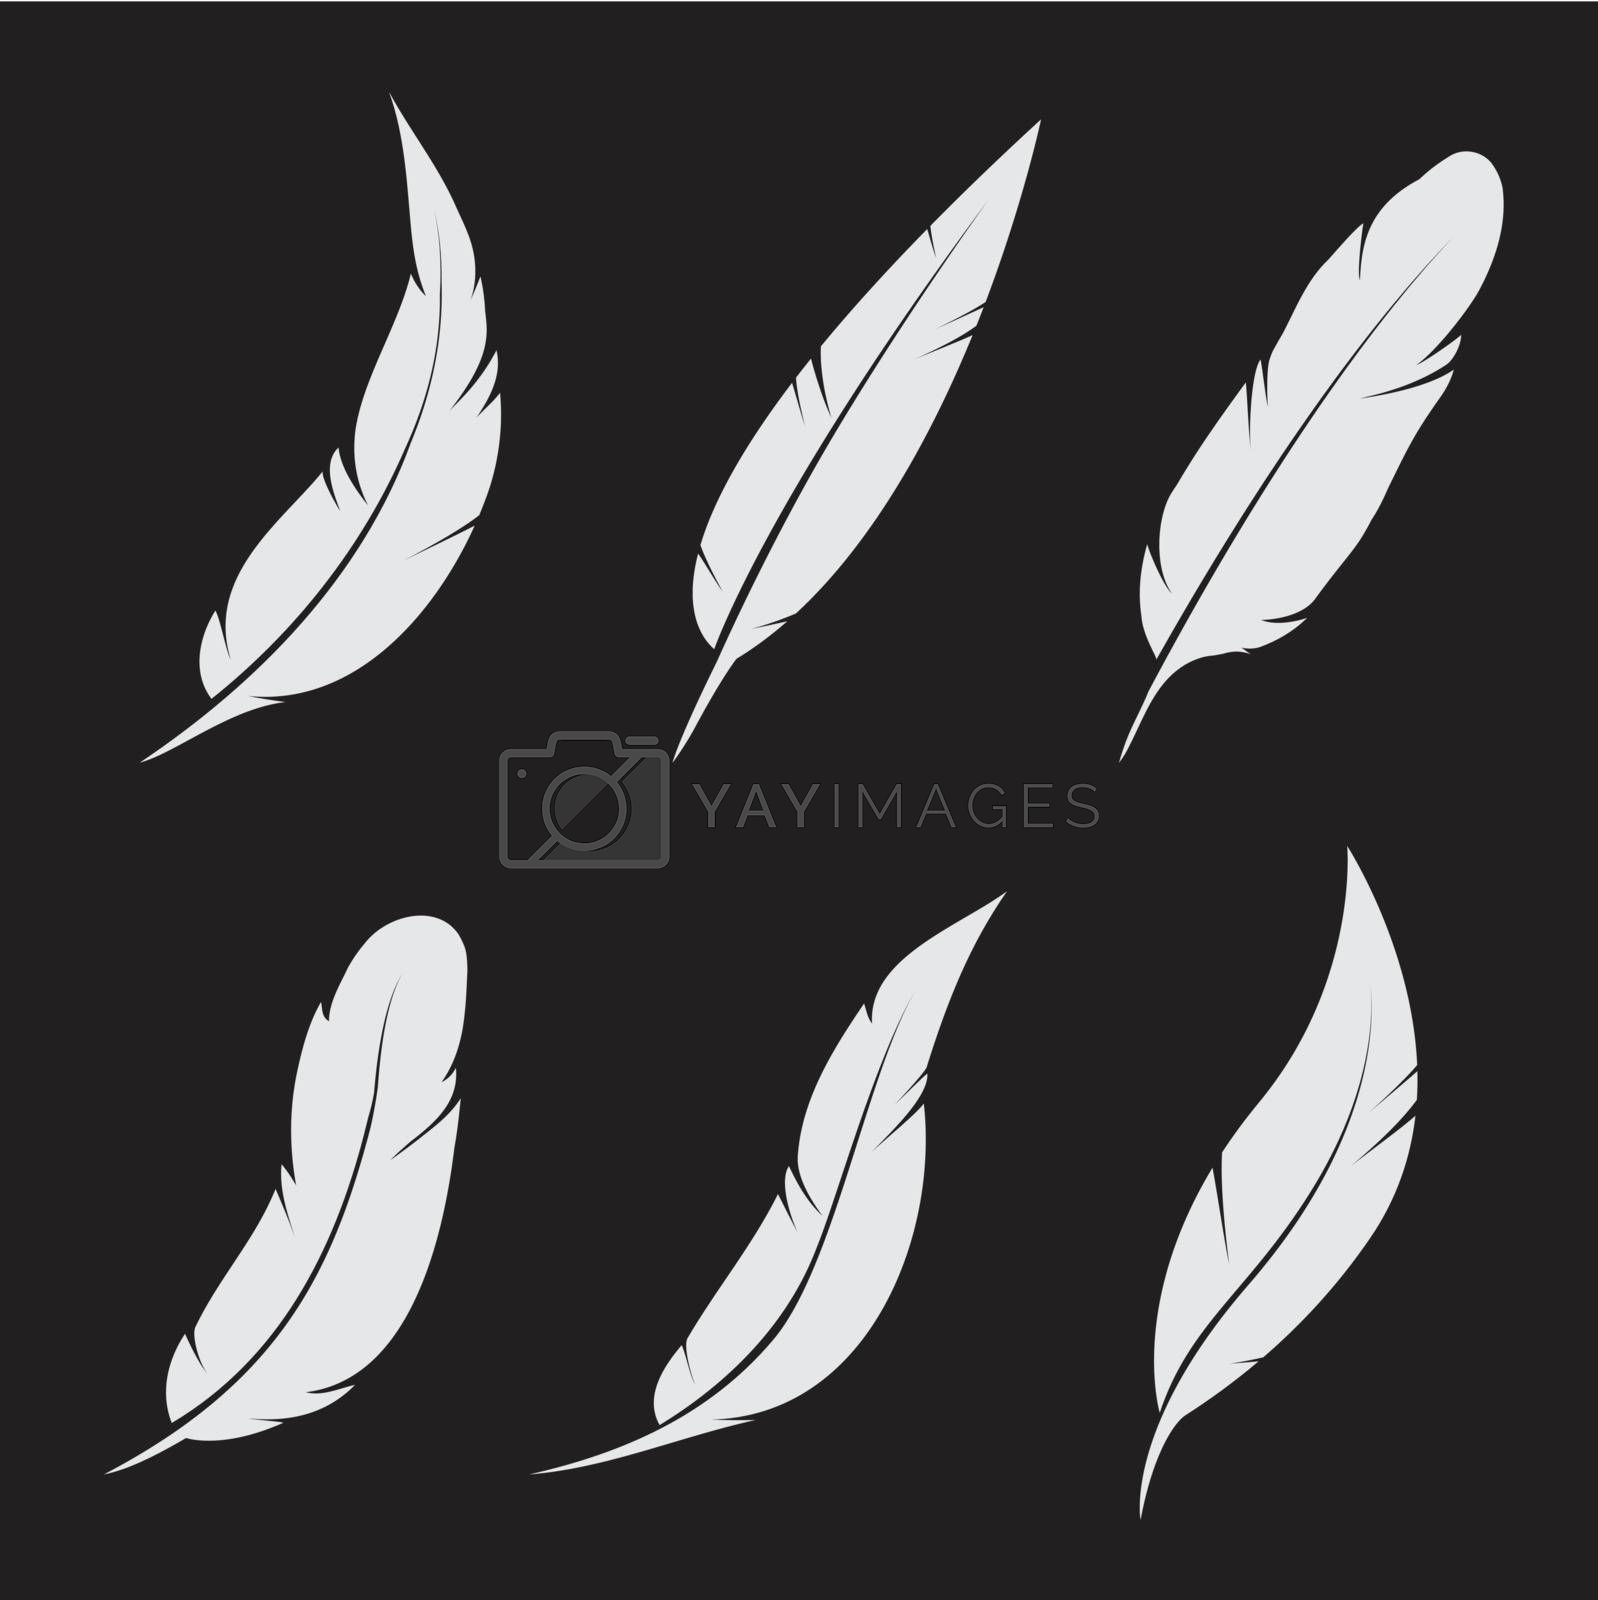 Royalty free image of Vector group of feather  by yod67